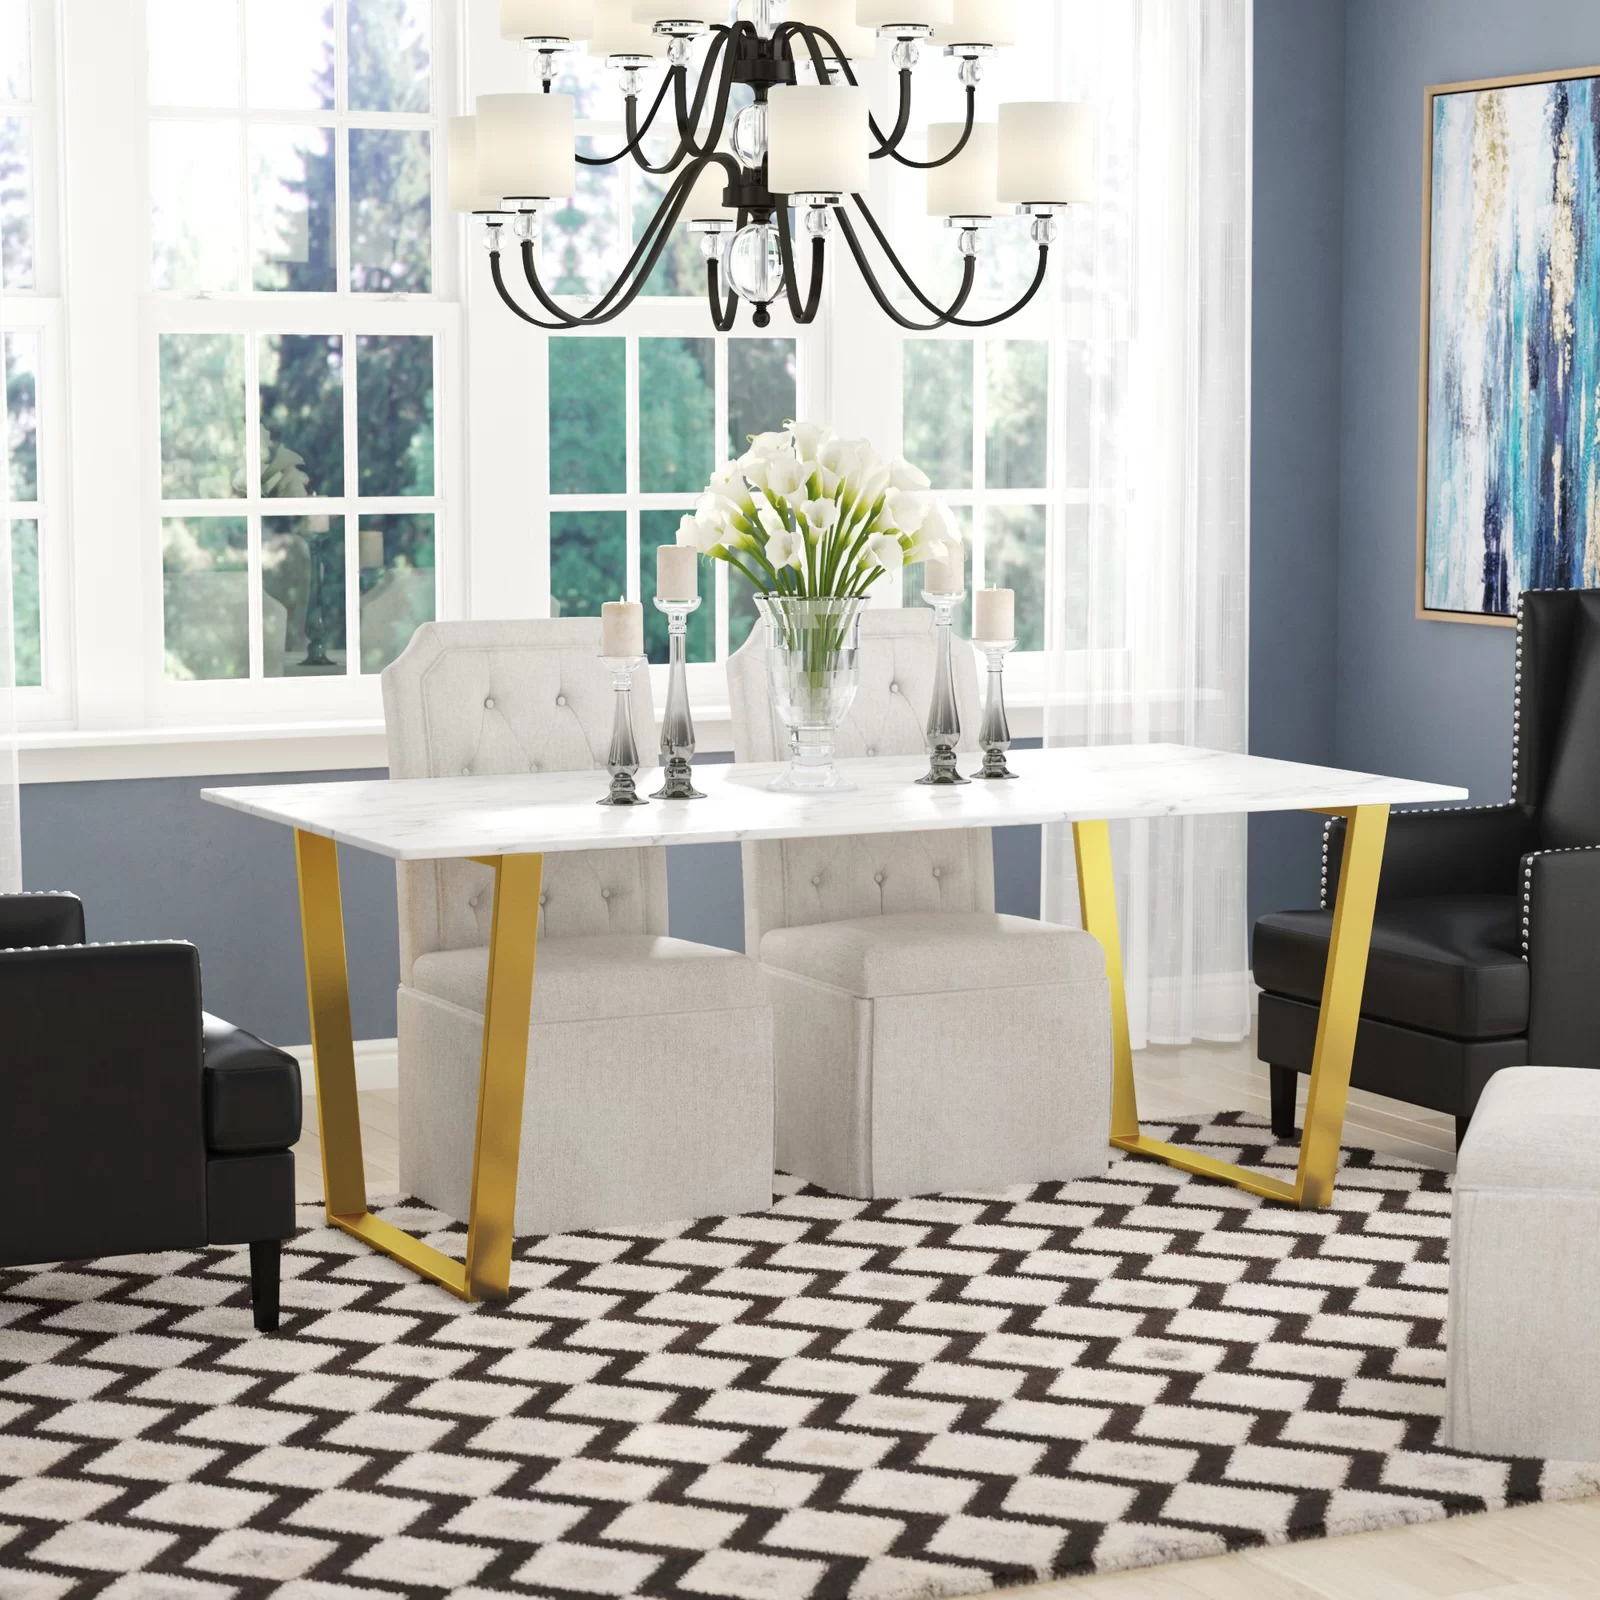 Best And Newest Dining Tables With White Marble Top Intended For Thompson Rectangular White Marble Top And Golden Steel Dining Table (View 7 of 30)